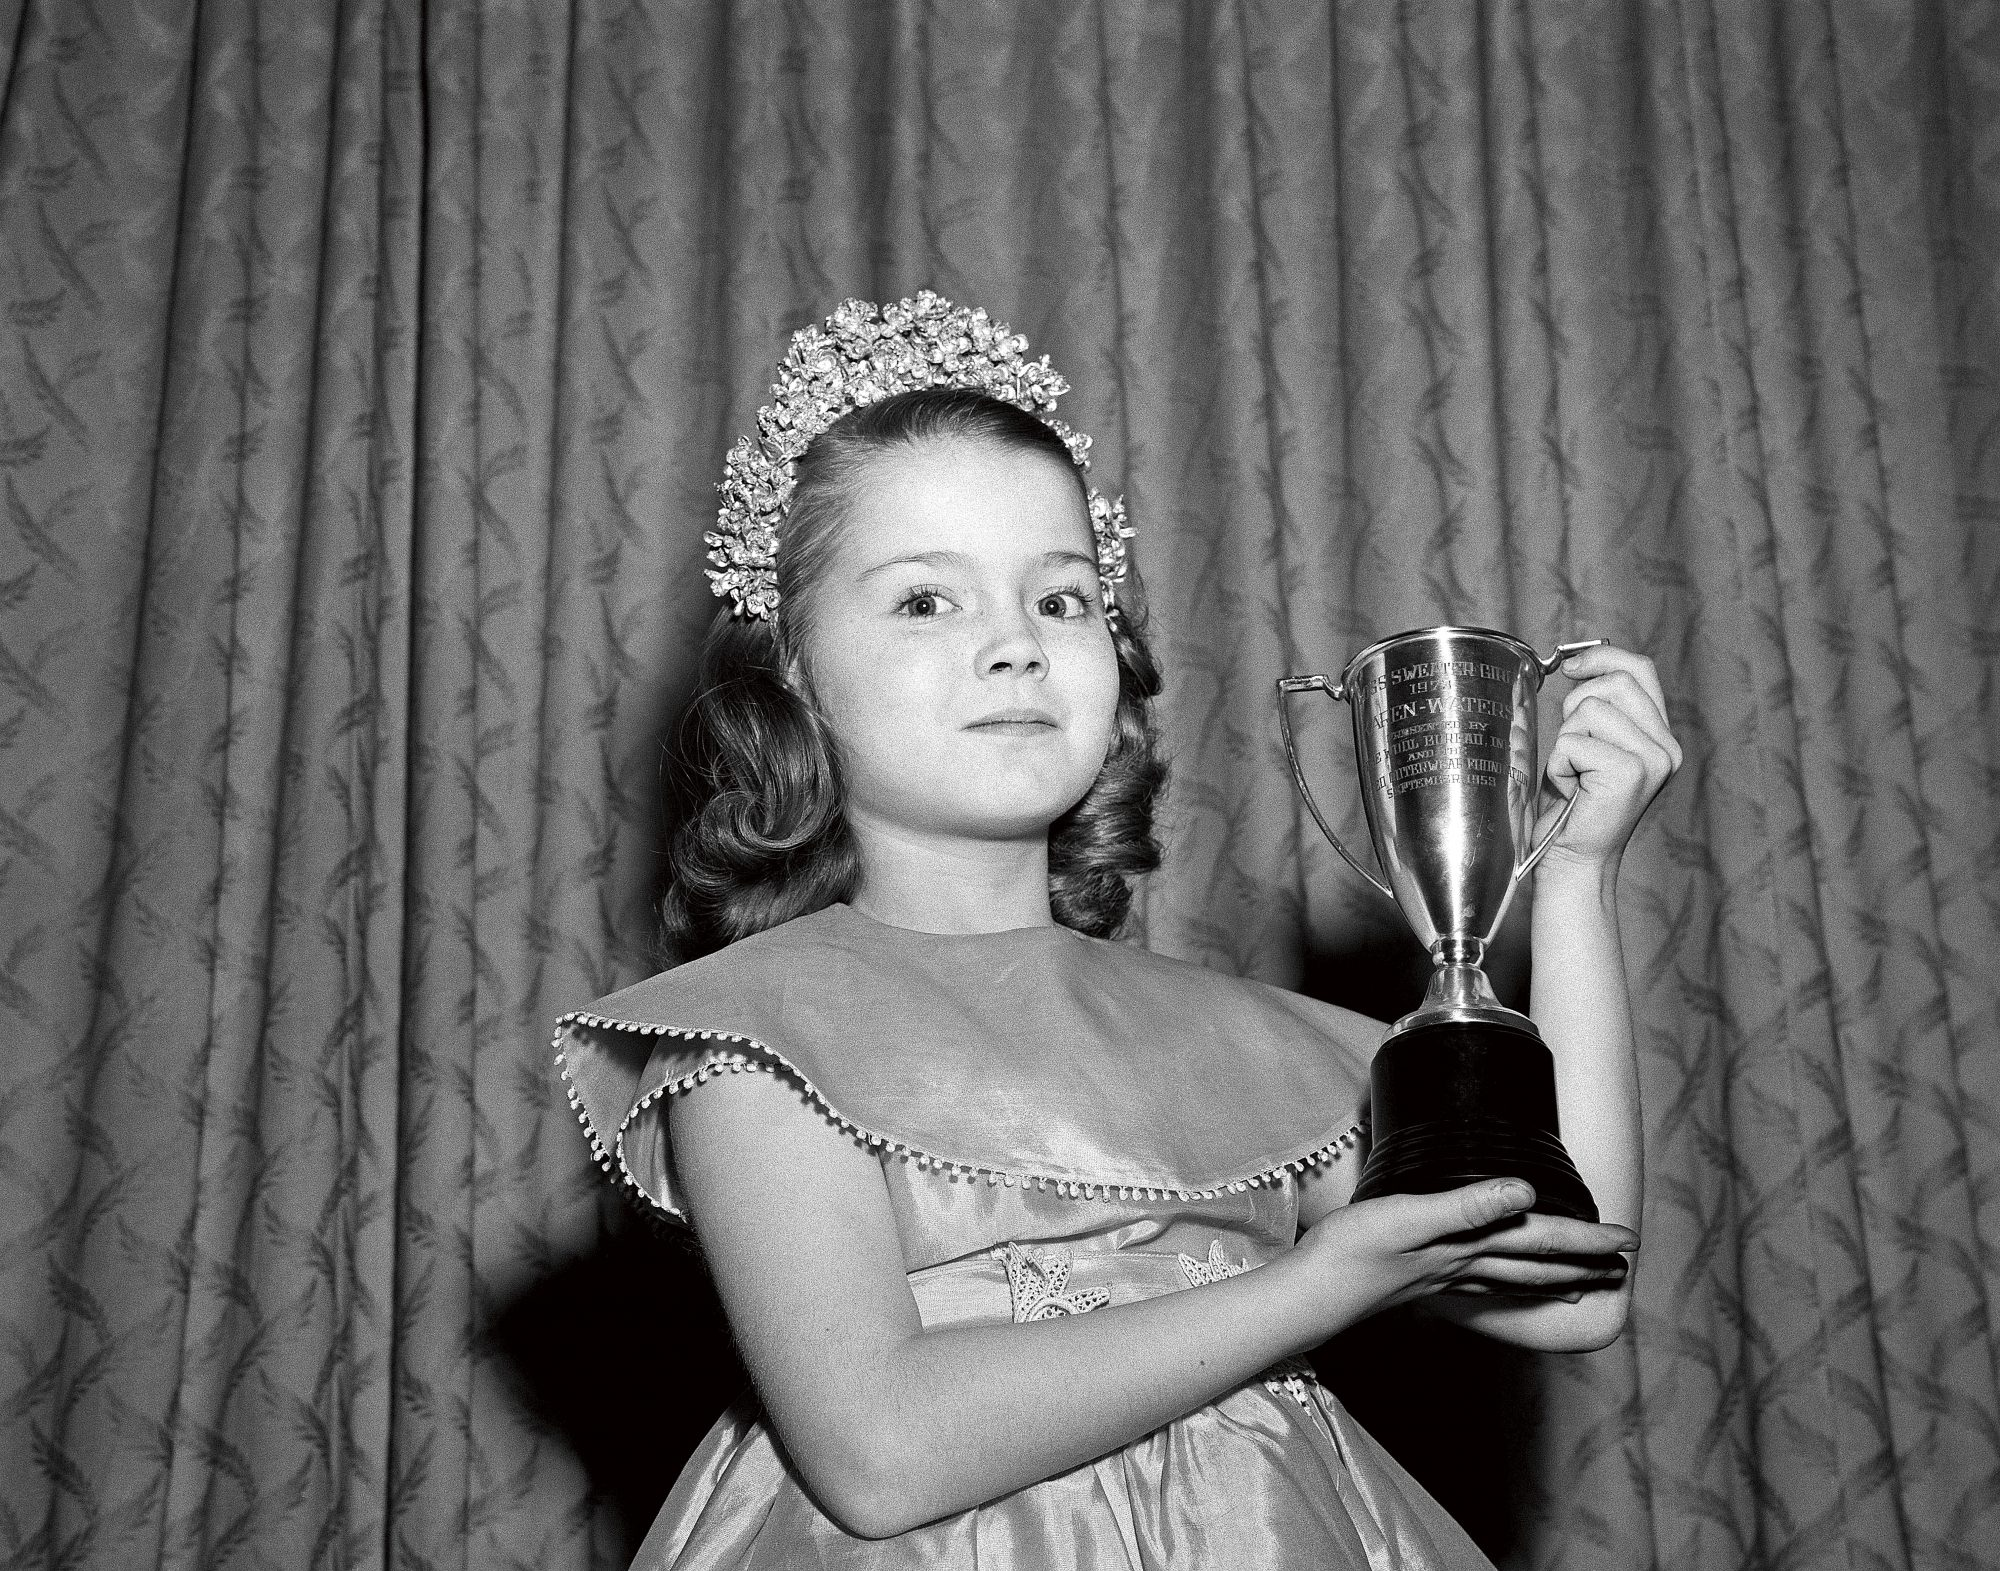 Little Girl Winning Beauty Pageant